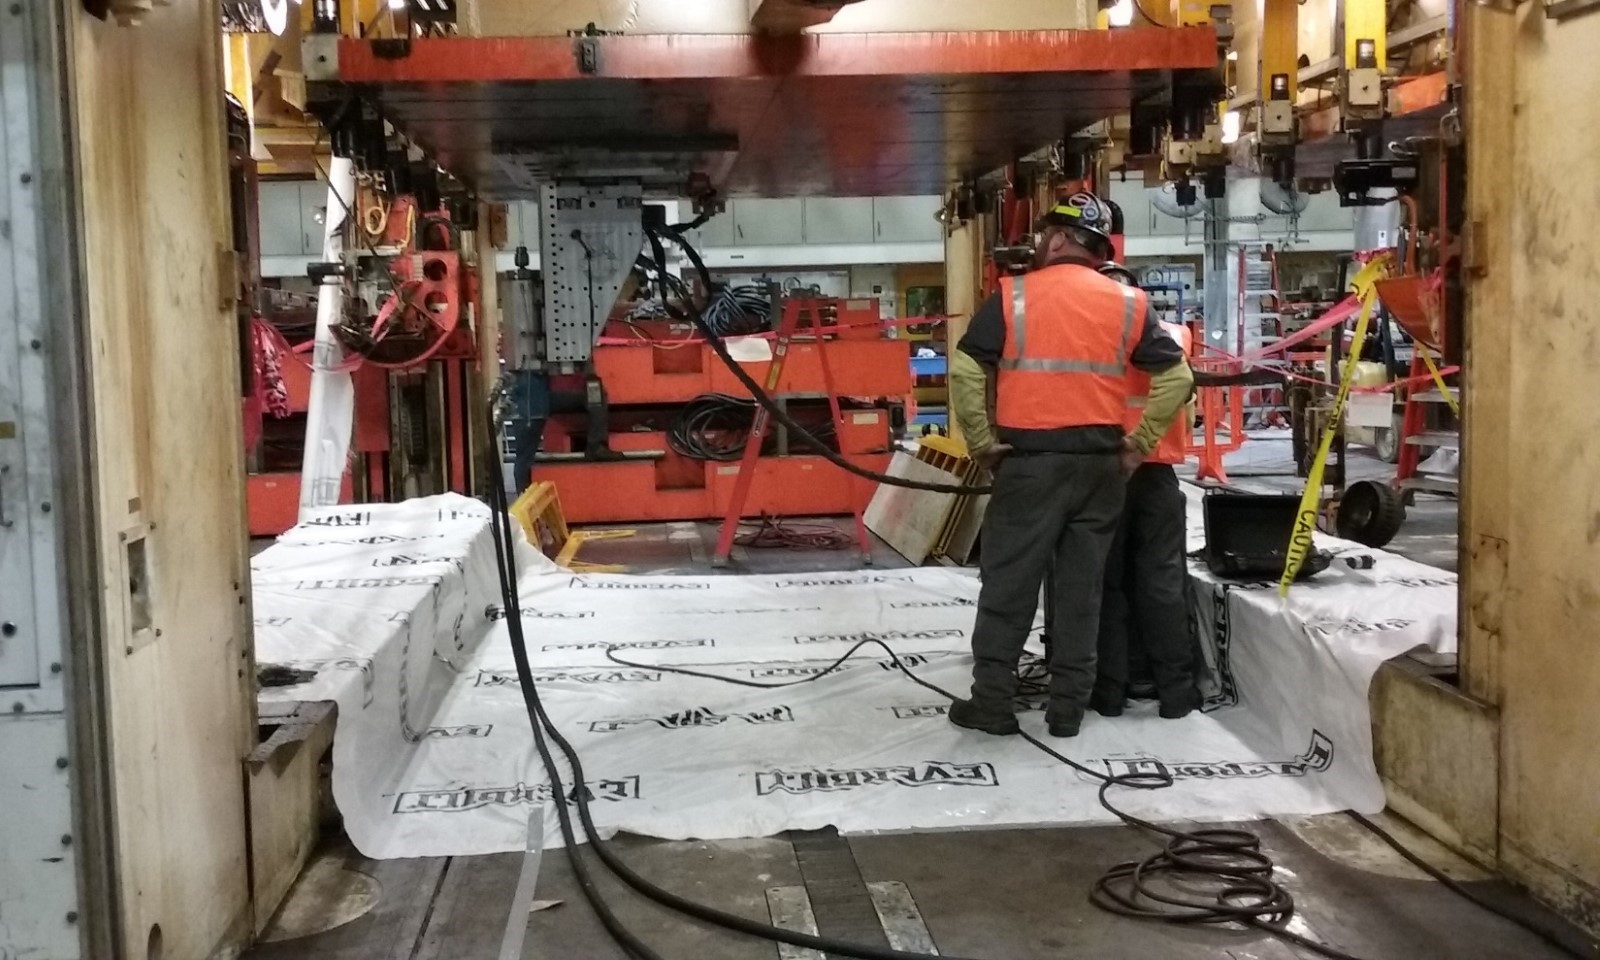 Atlas' On-Site machining team is making design changes to a customer's press bay.